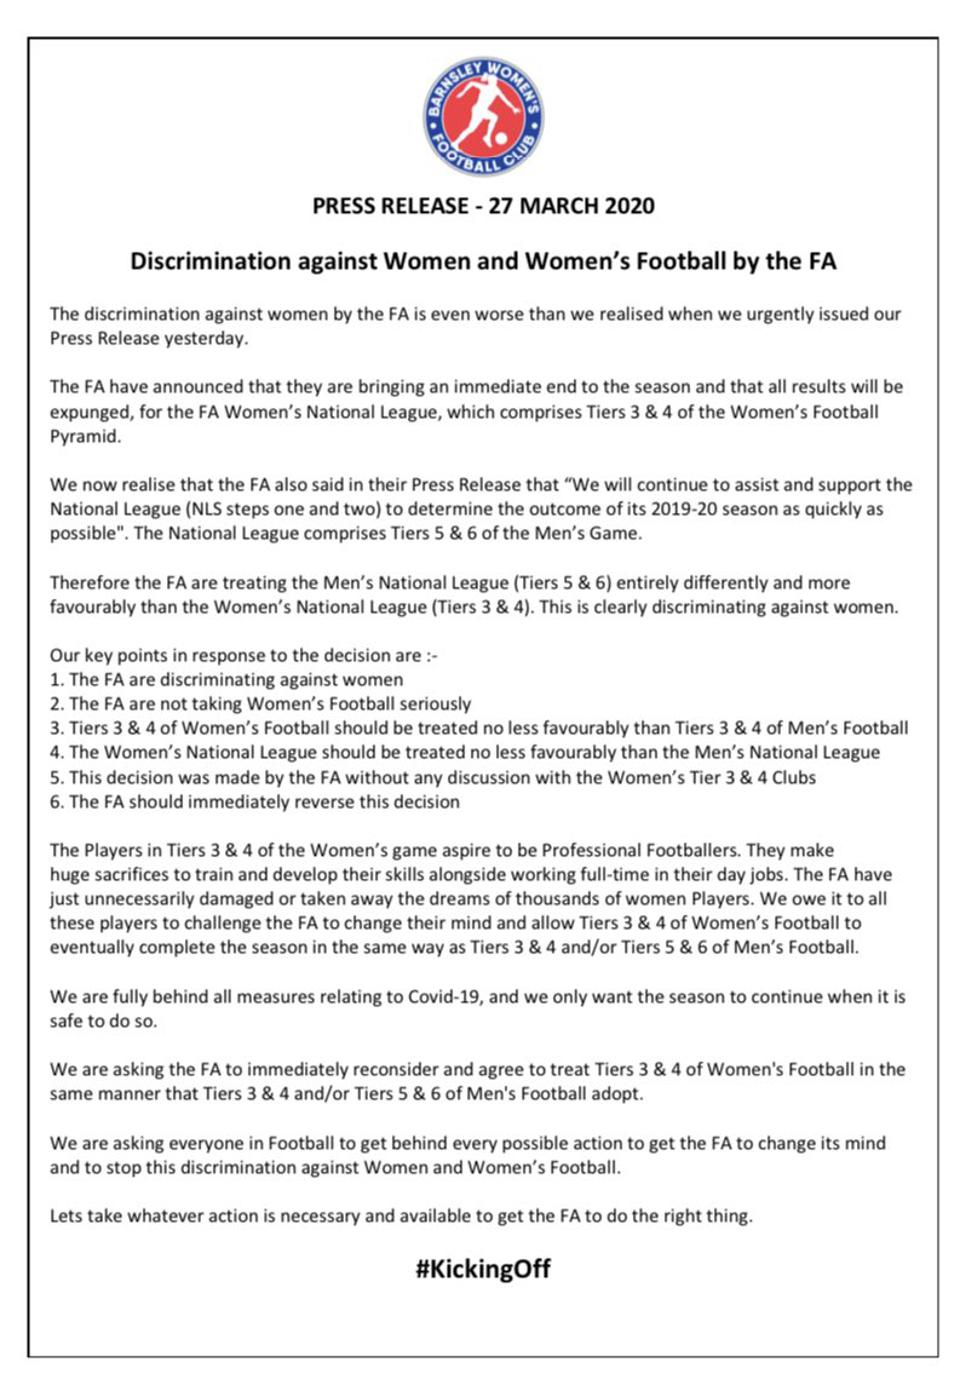 Press Release issued by Barnsley Women's FC on March 30 accusing The FA of discrimination